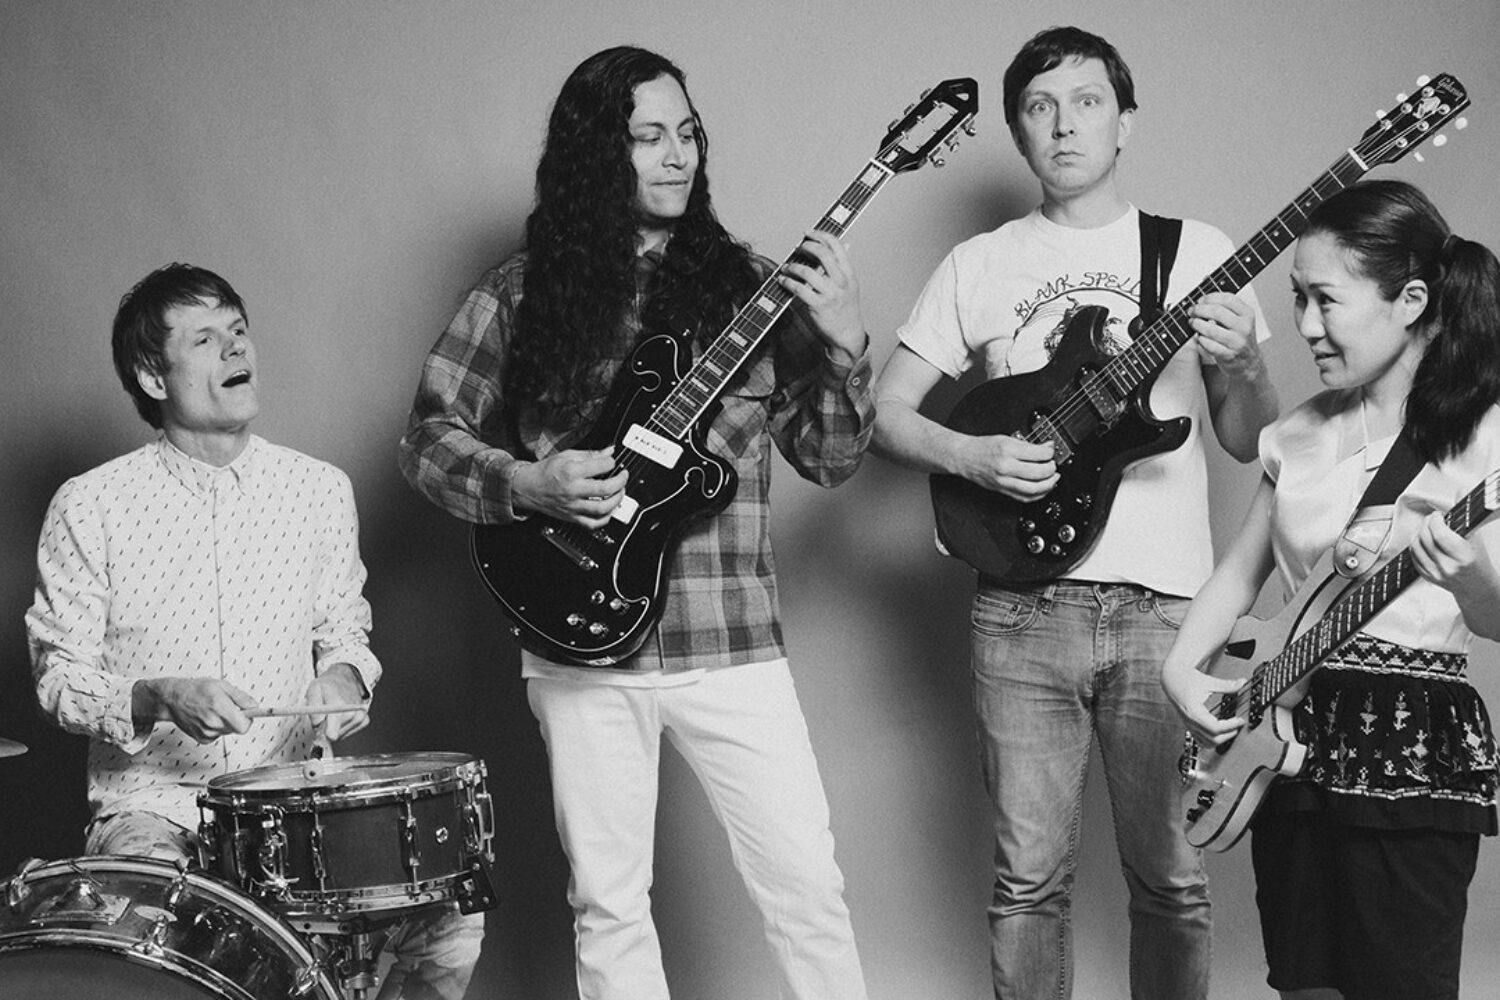 Deerhoof are sharing new music from their side projects for charity